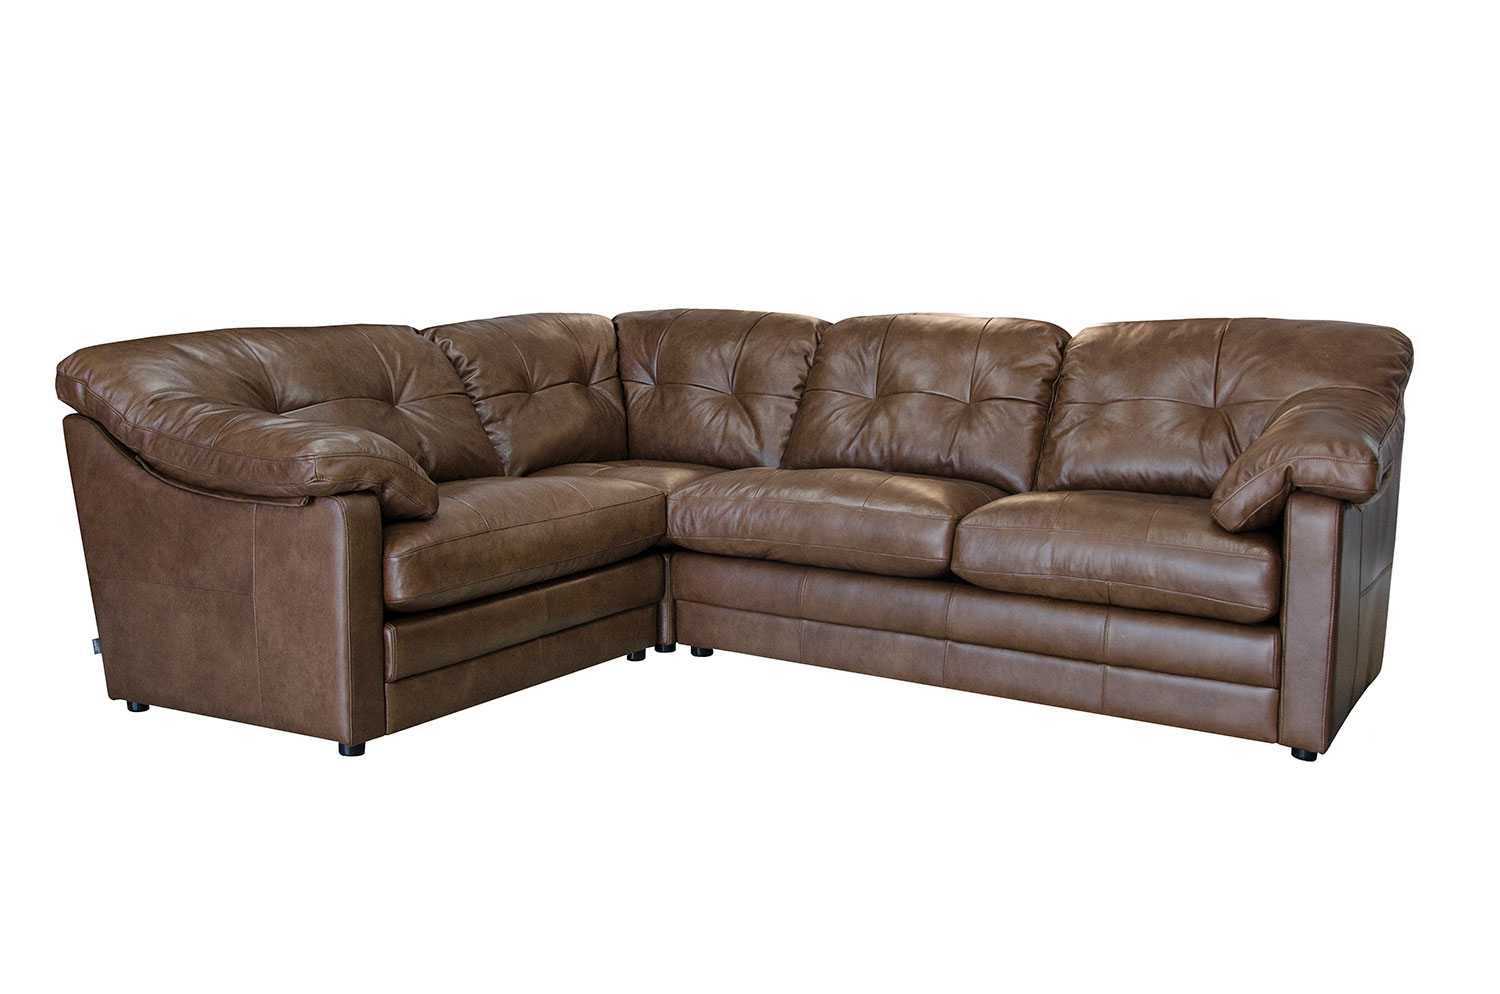 bailey leather sofa bed jarder garden corner set cover furniture village home the honoroak